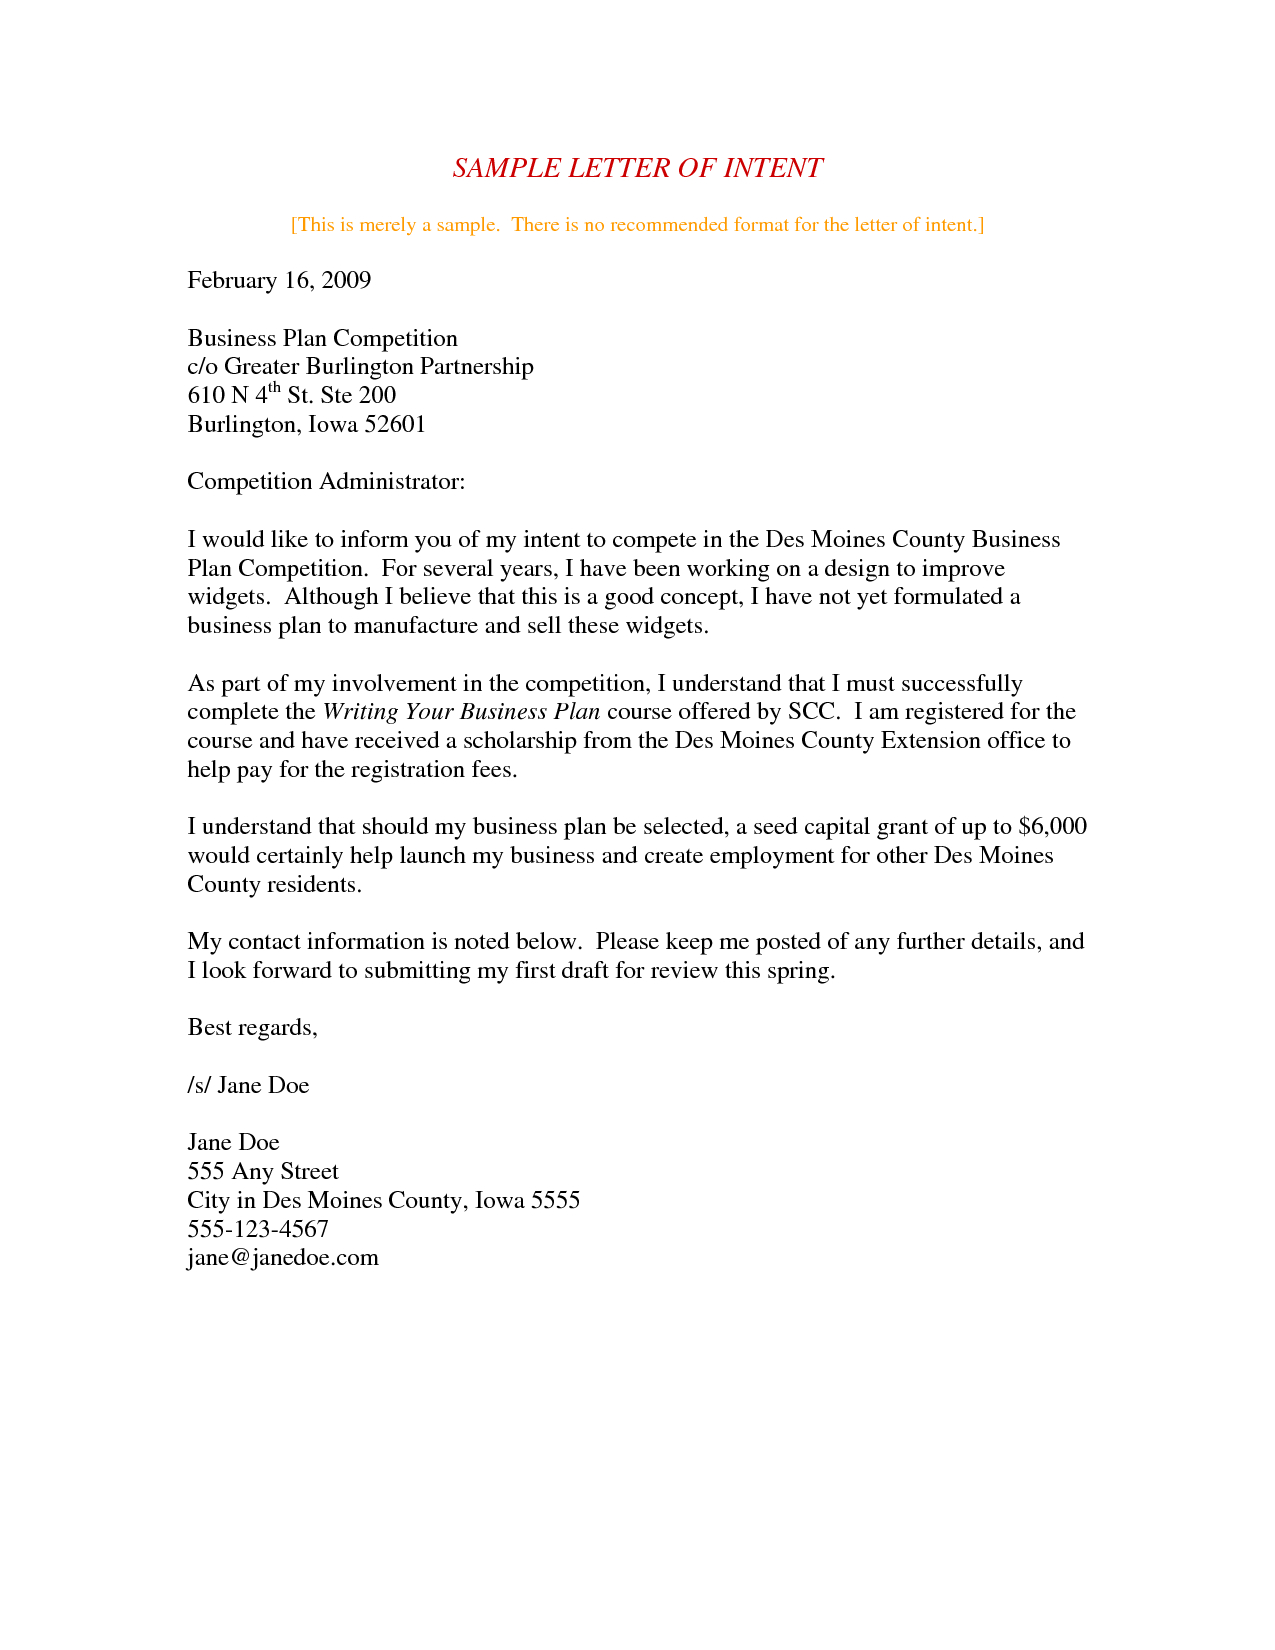 Letter Of Intent Template Business Partnership - Letter Intent Partnership Template S High Resolution Sample